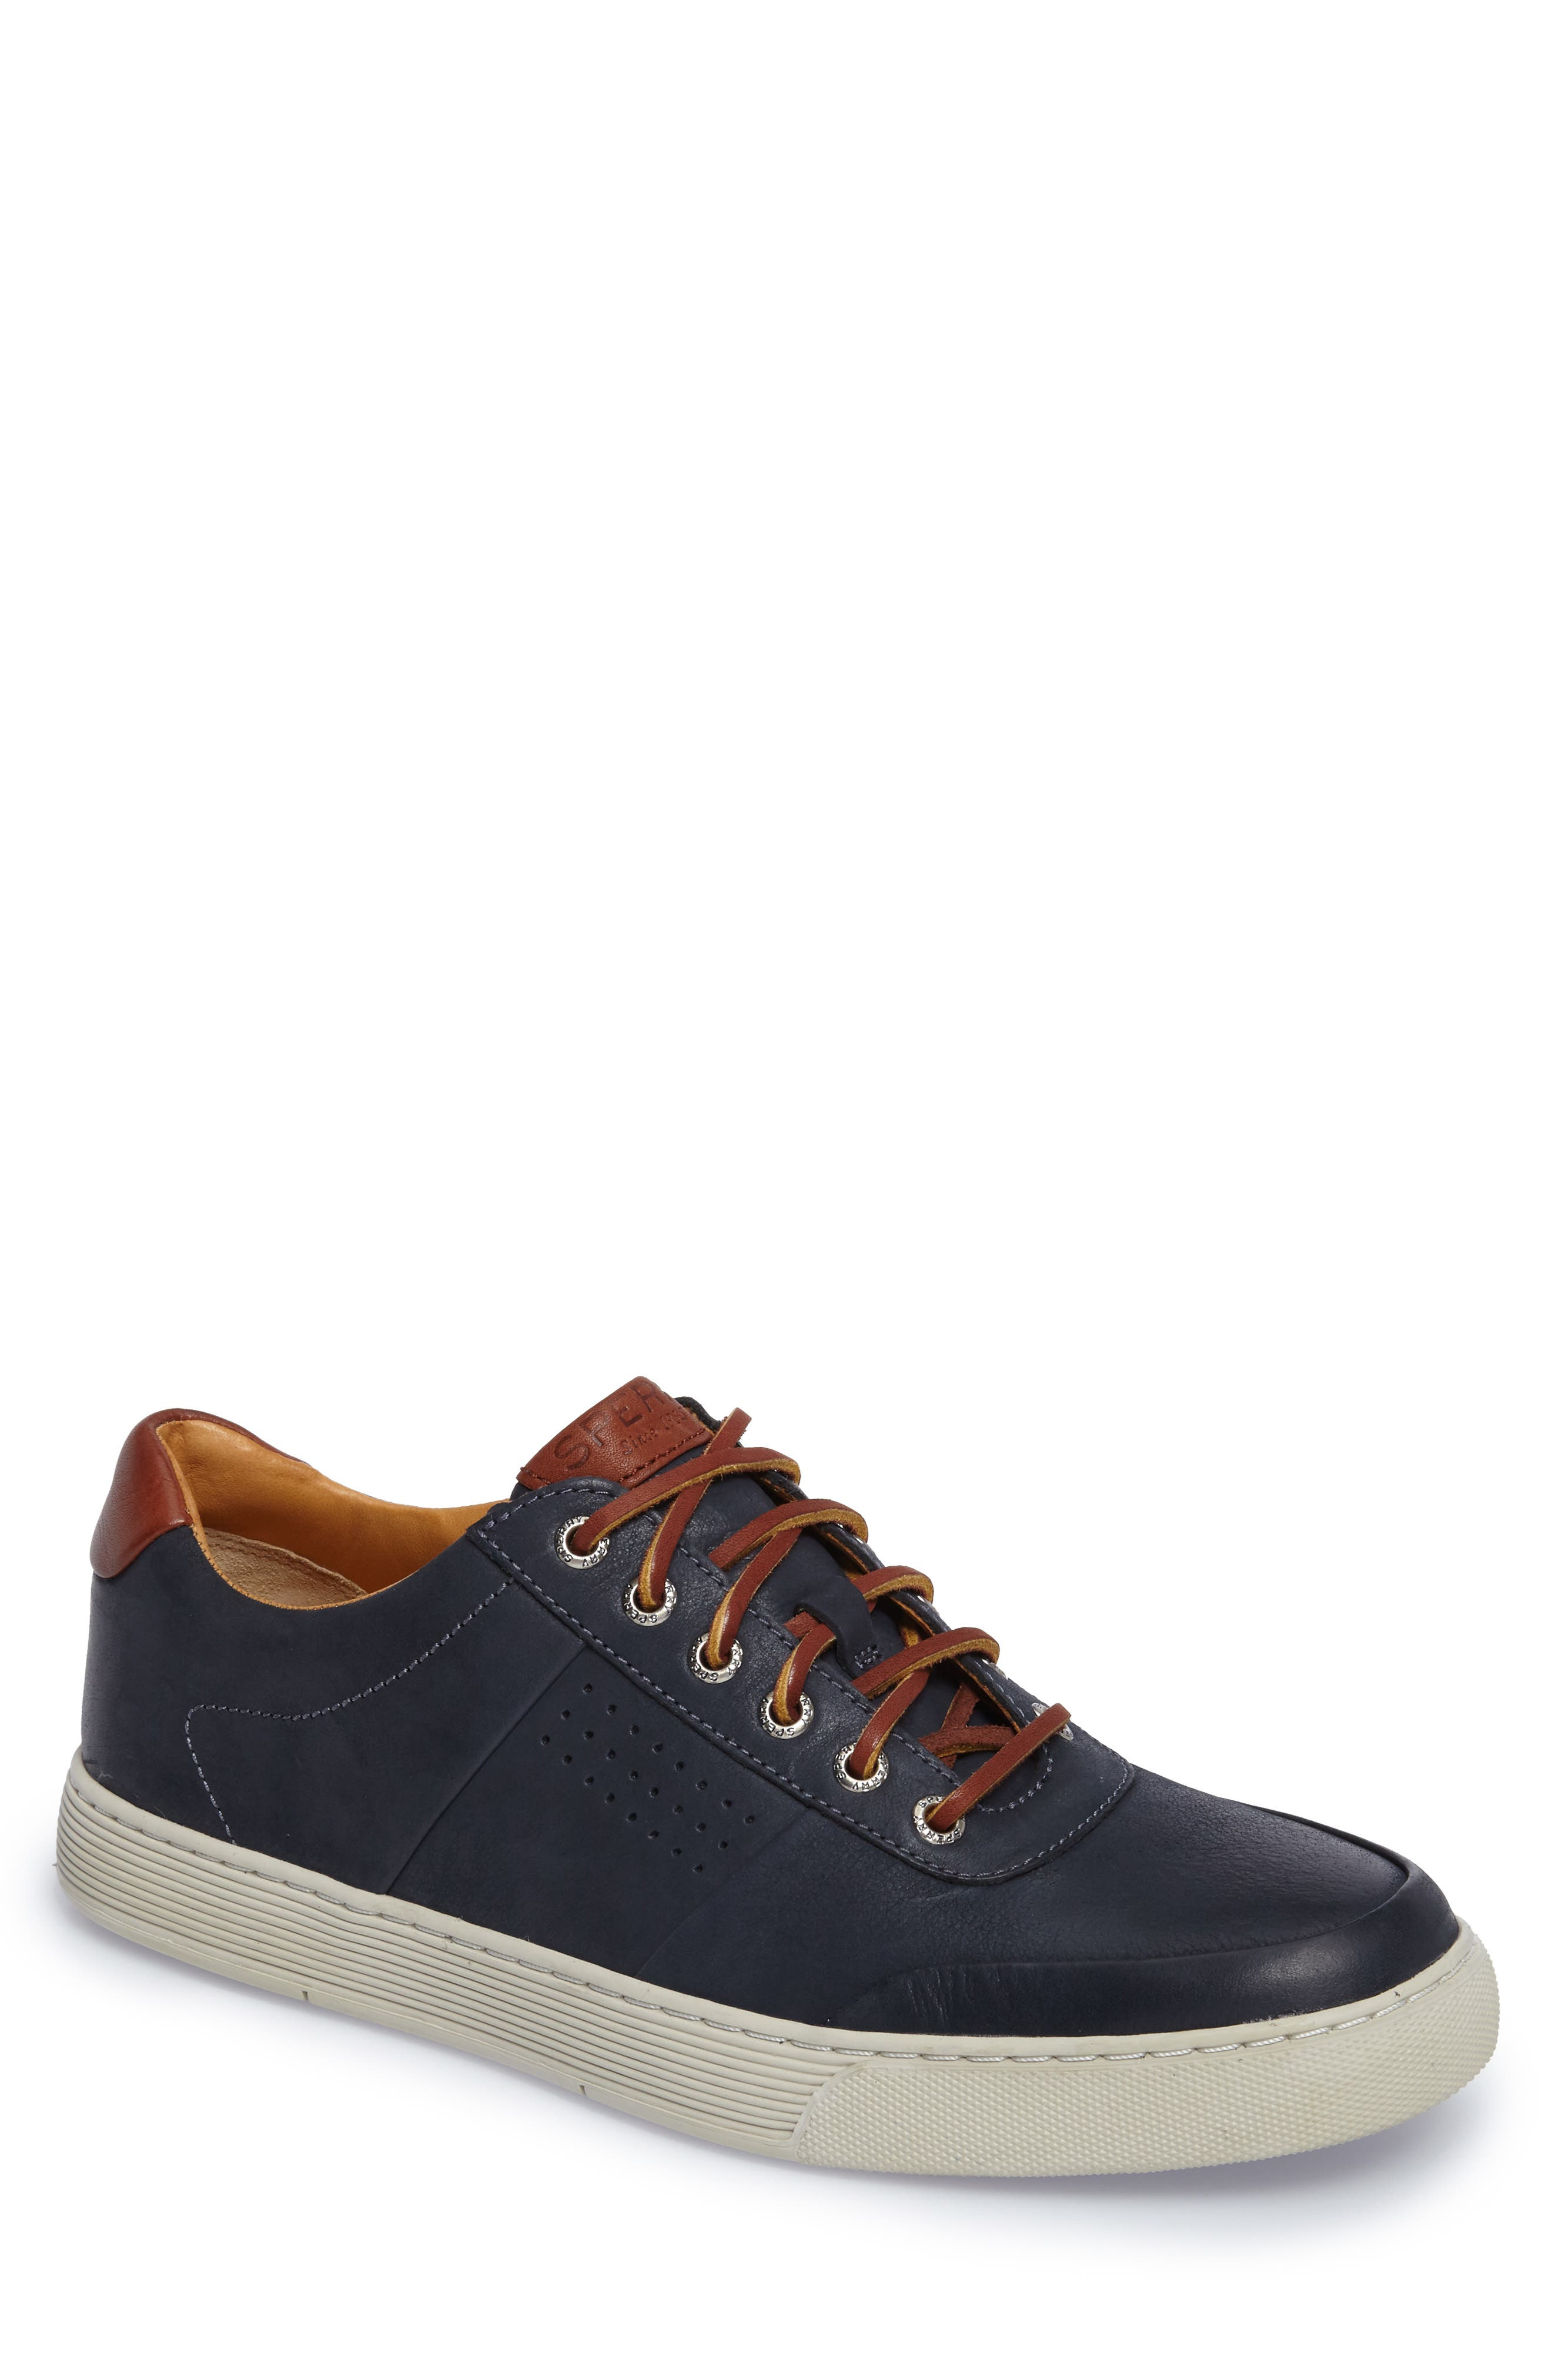 Alternate Image 1 Selected - Sperry Gold Cup Sport Sneaker (Men) (Regular Retail Price: $154.95)